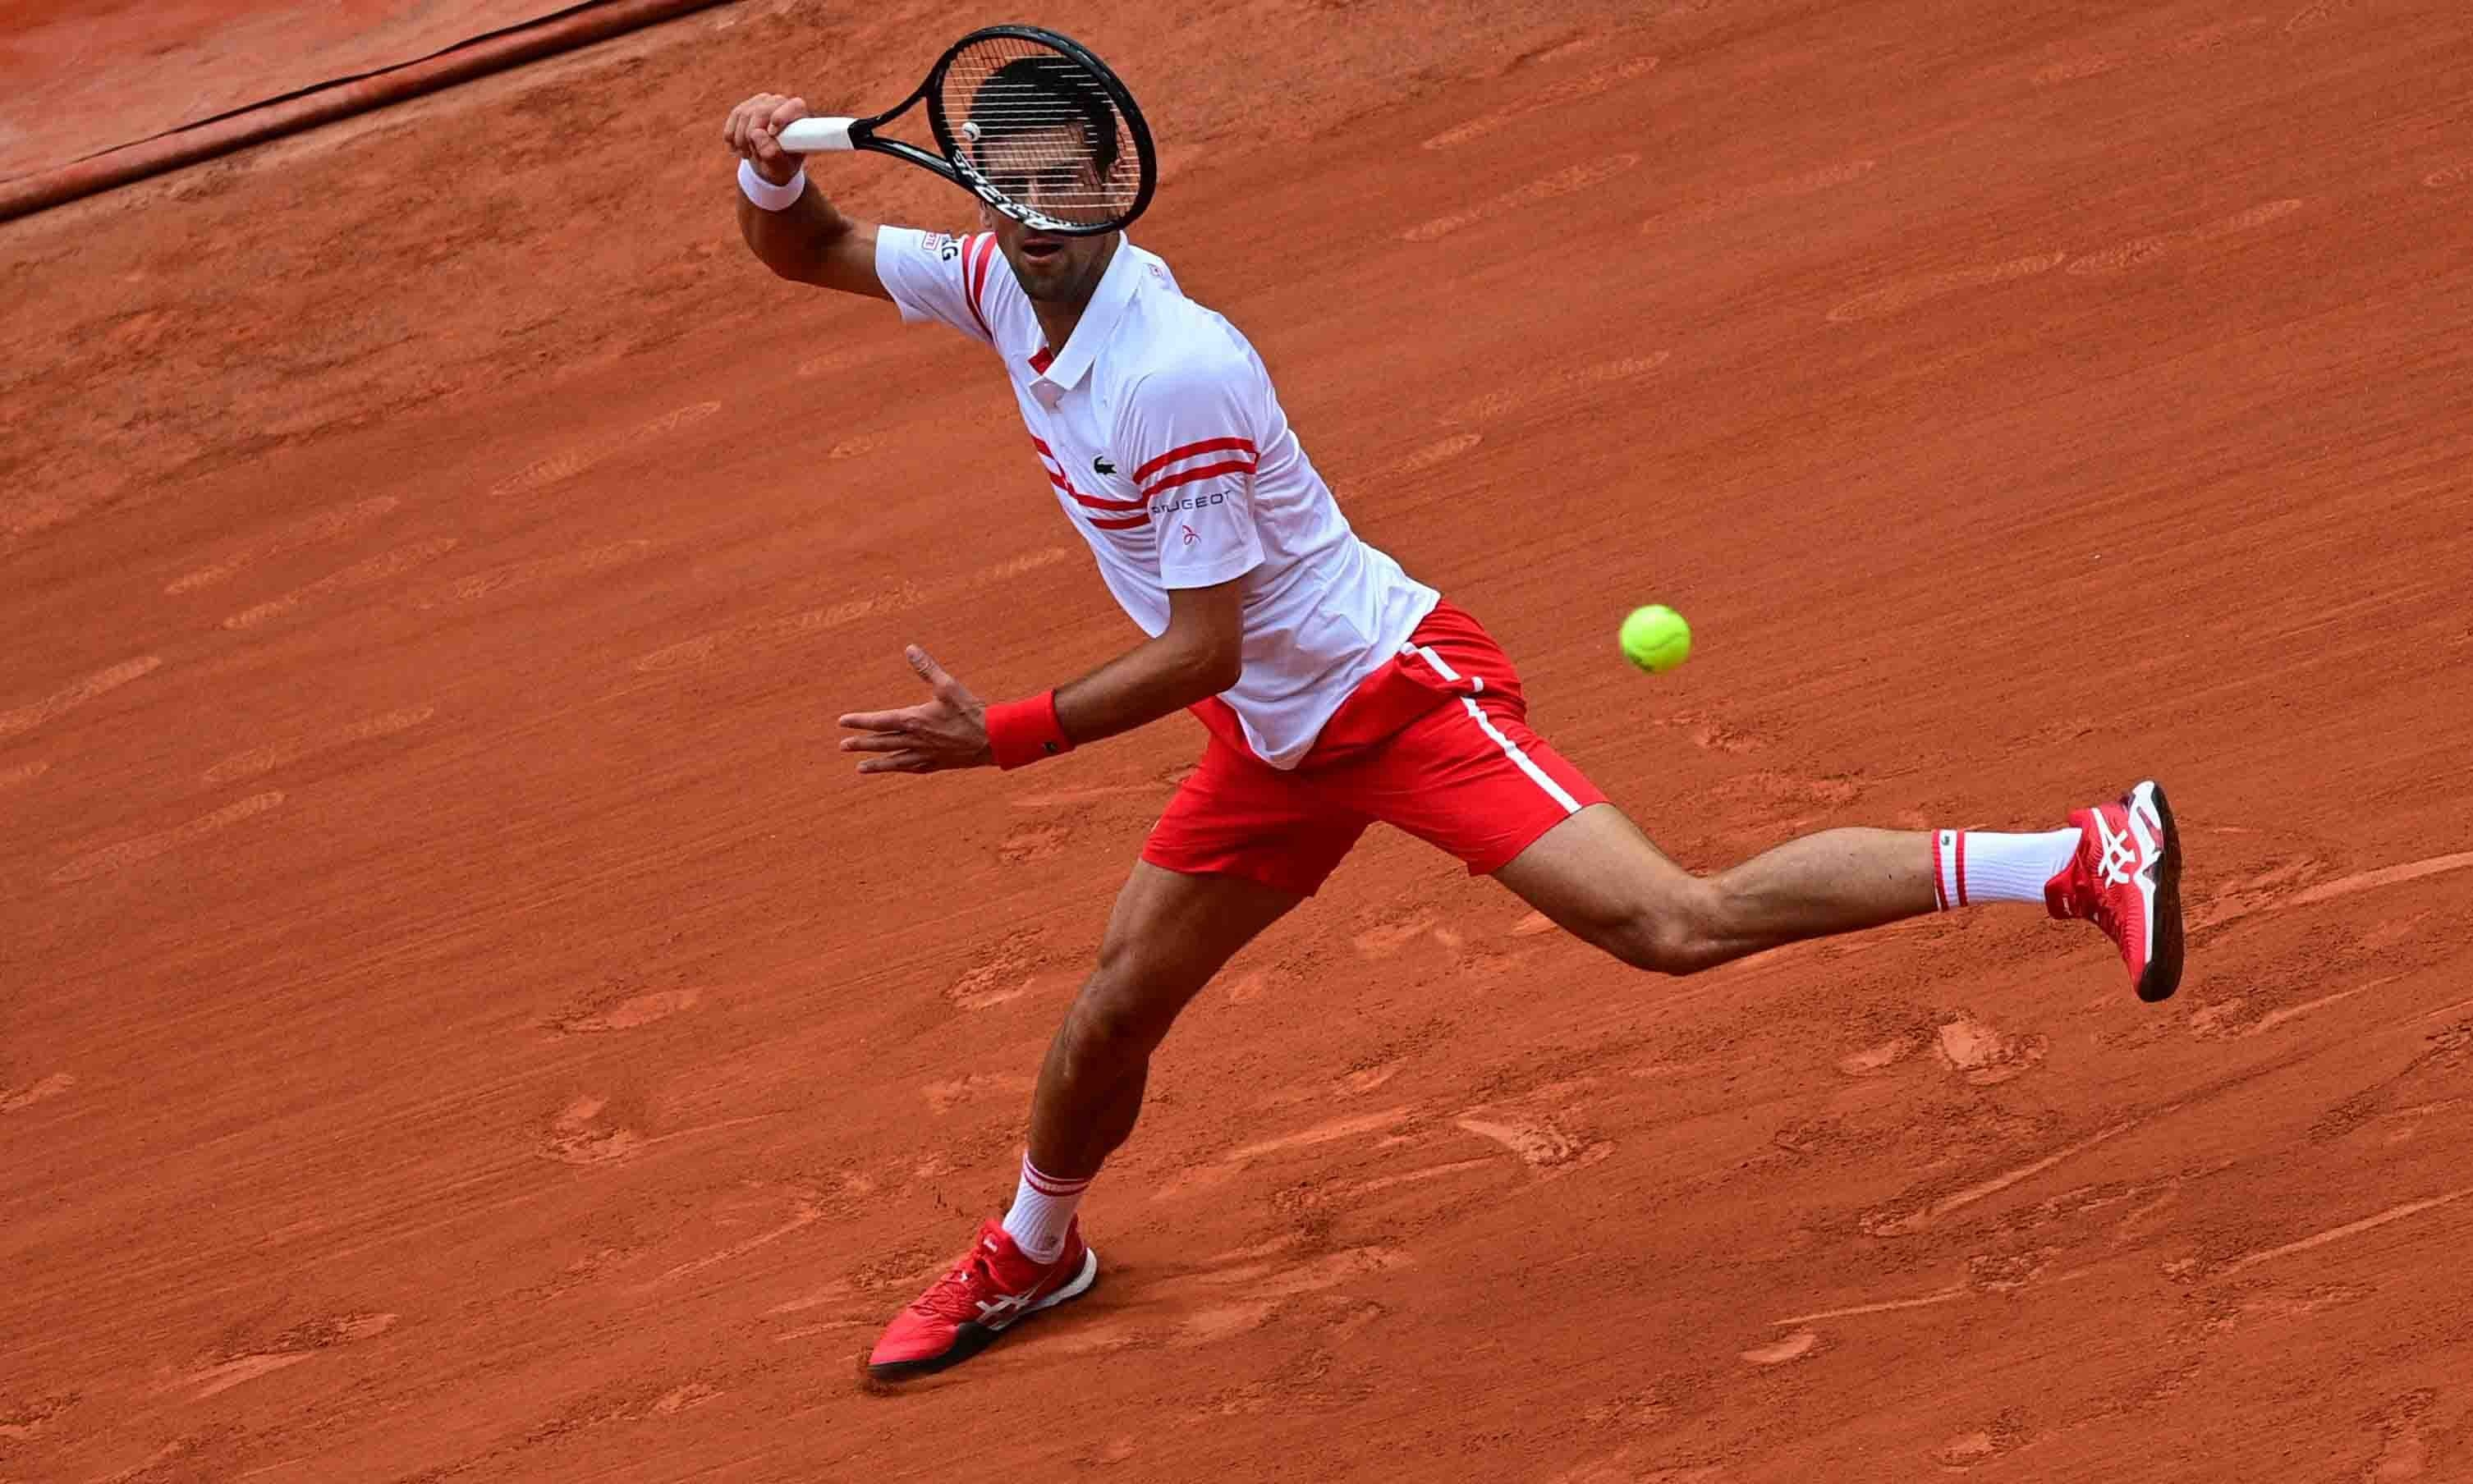 Serbia's Novak Djokovic returns the ball to Italy's Lorenzo Musetti during their men's singles fourth round tennis match on Day 9 of The Roland Garros 2021 French Open tennis tournament in Paris on June 7. — AFP